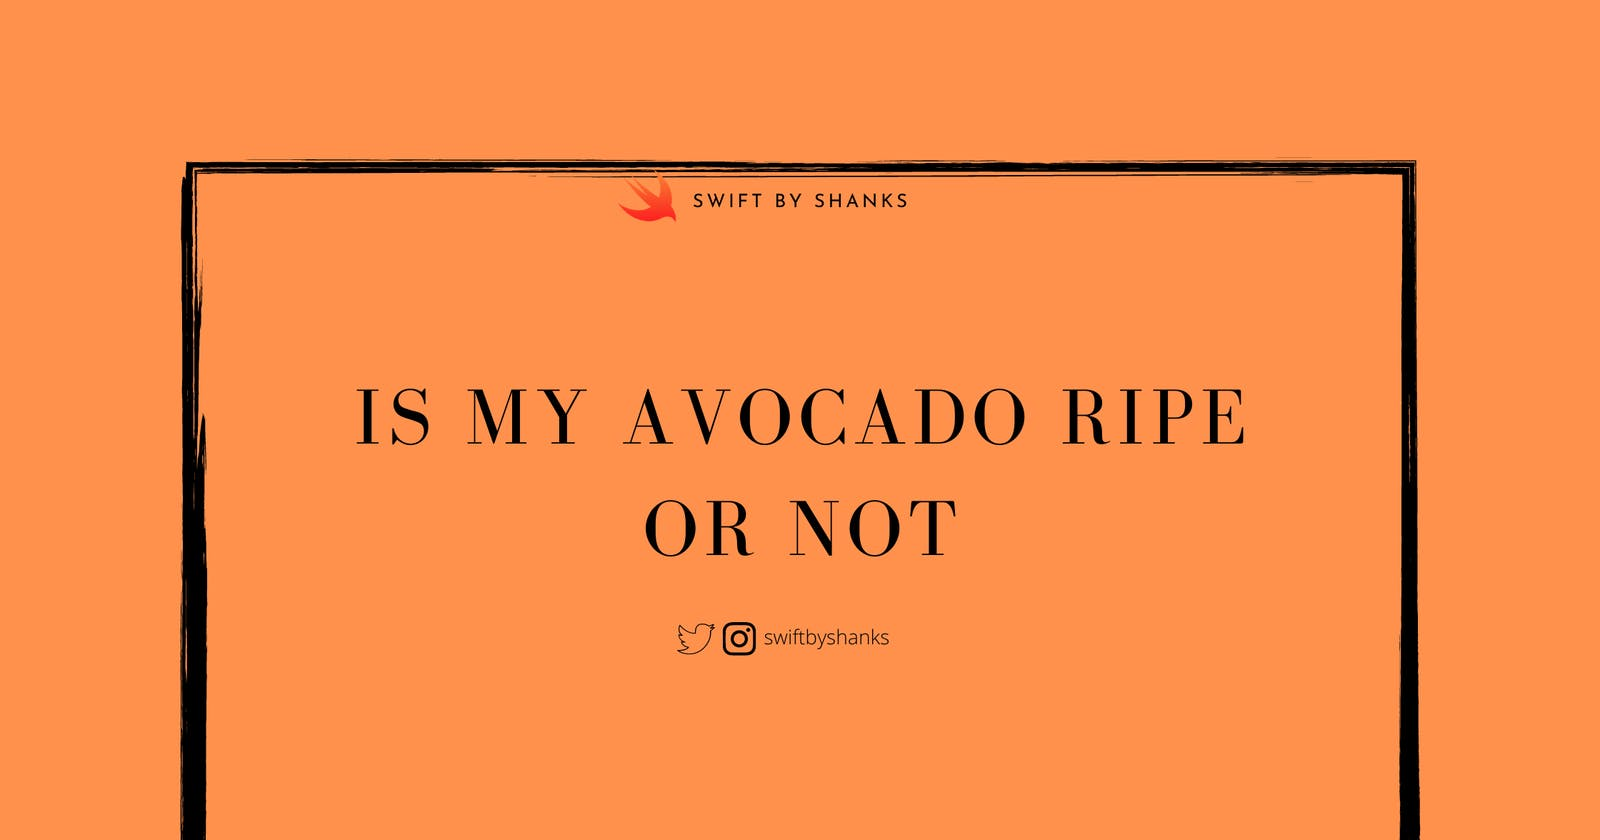 Is my avocado ripe? Let's find out with Machine Learning!